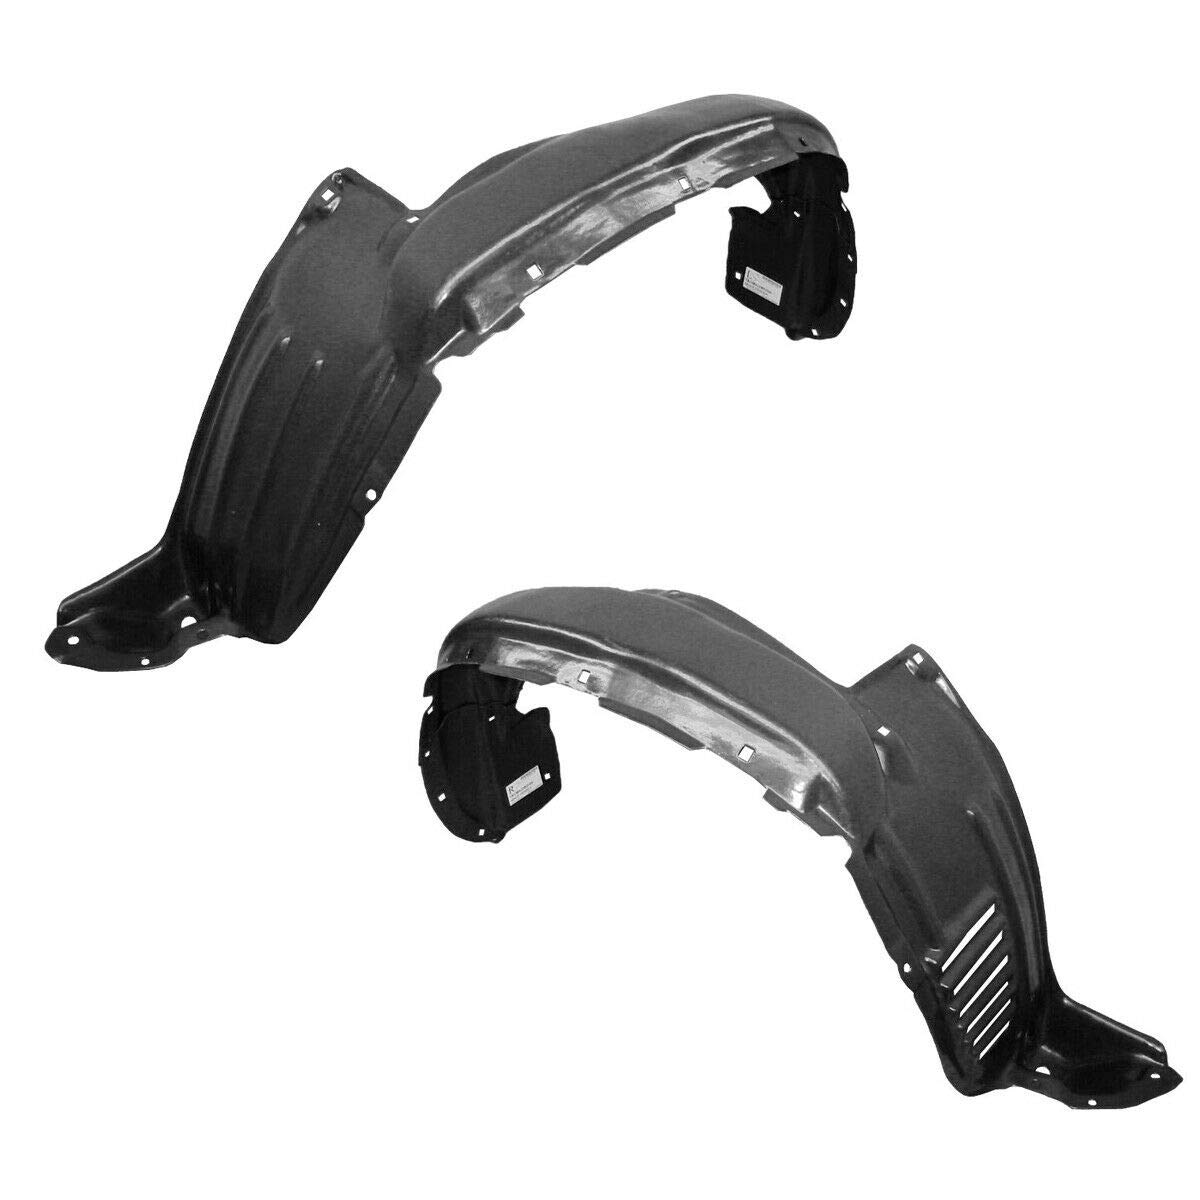 Parts N Go 2005-2011 Tacoma 2WD Front Driver /& Passenger Side Fender Liner Set 5387604150 TO1248134